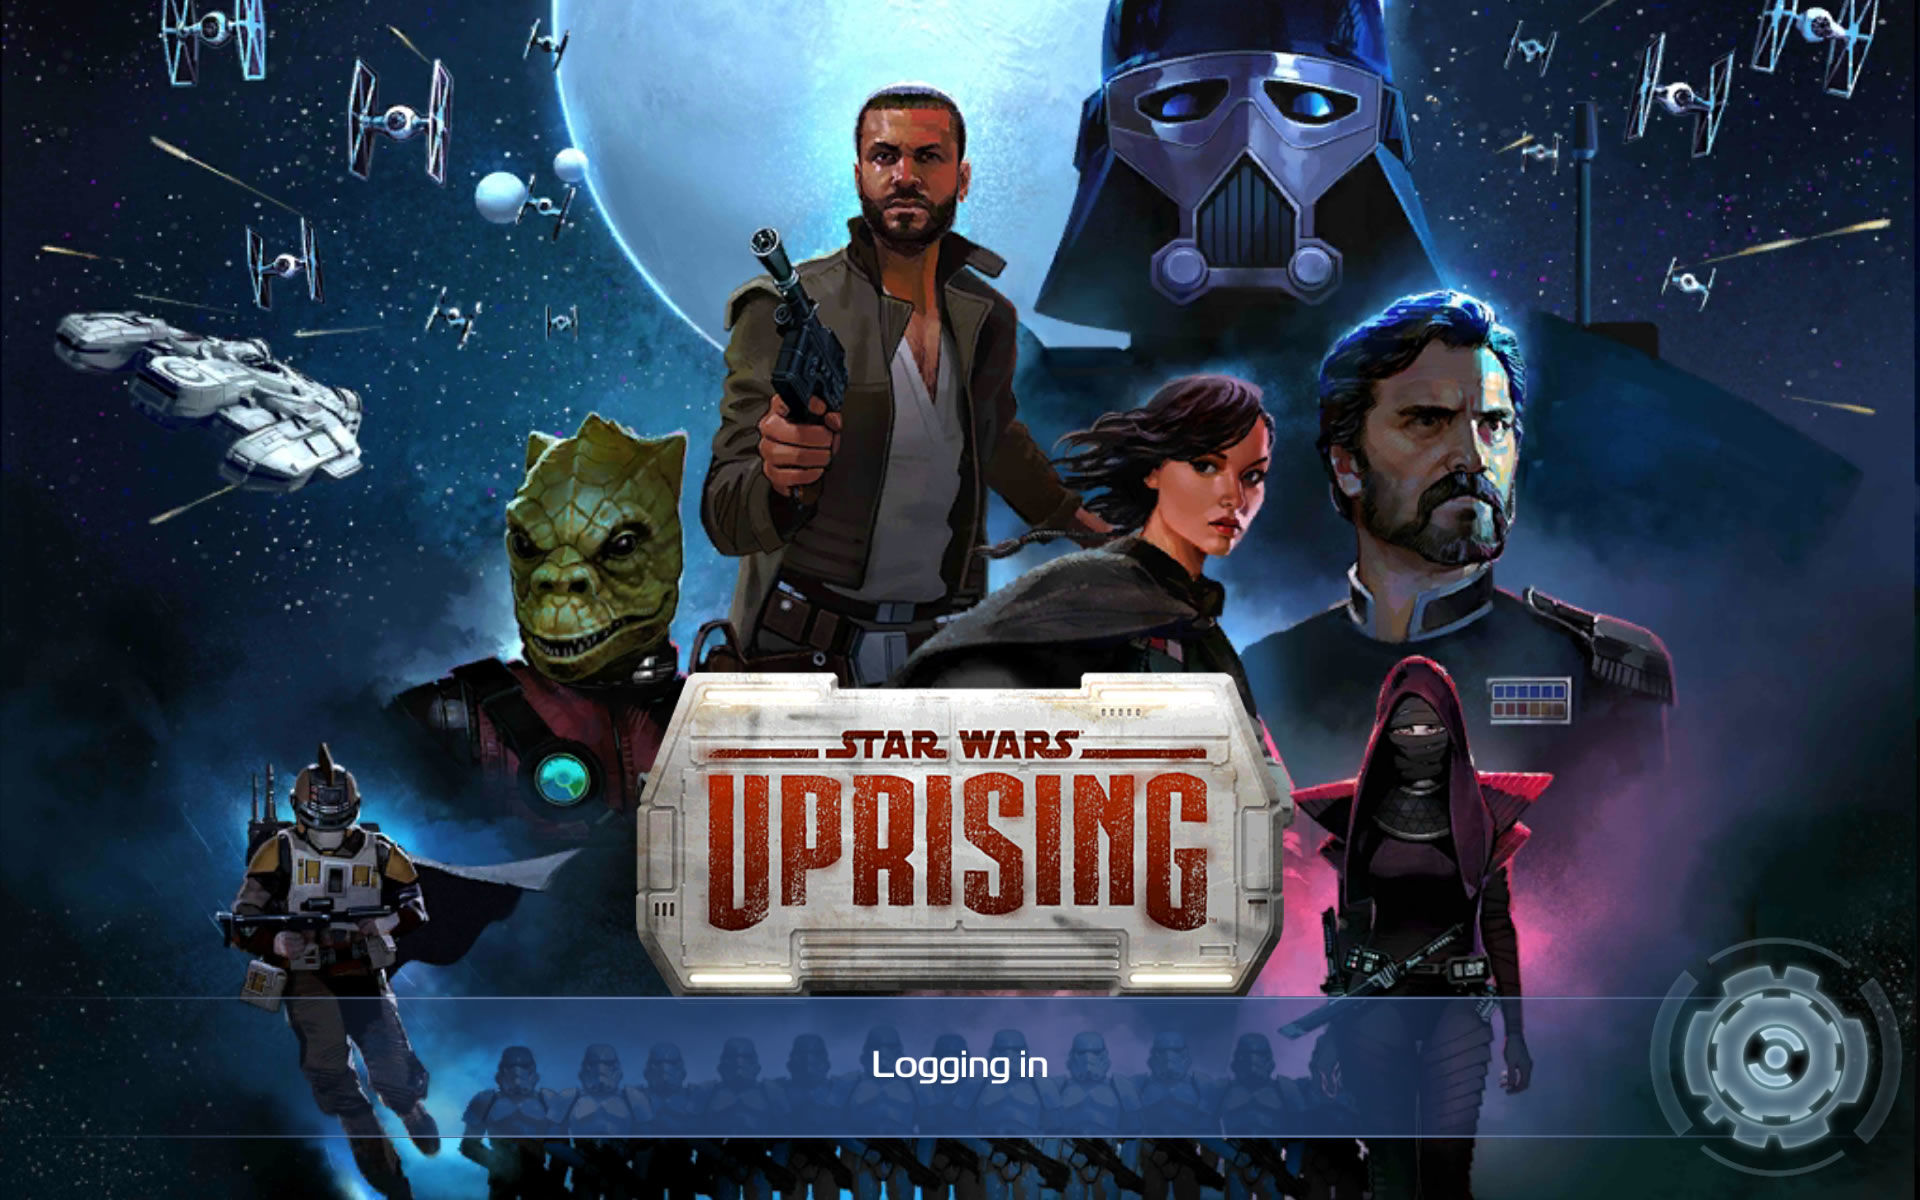 Star Wars: Uprising Android The title screen shown while logging in.